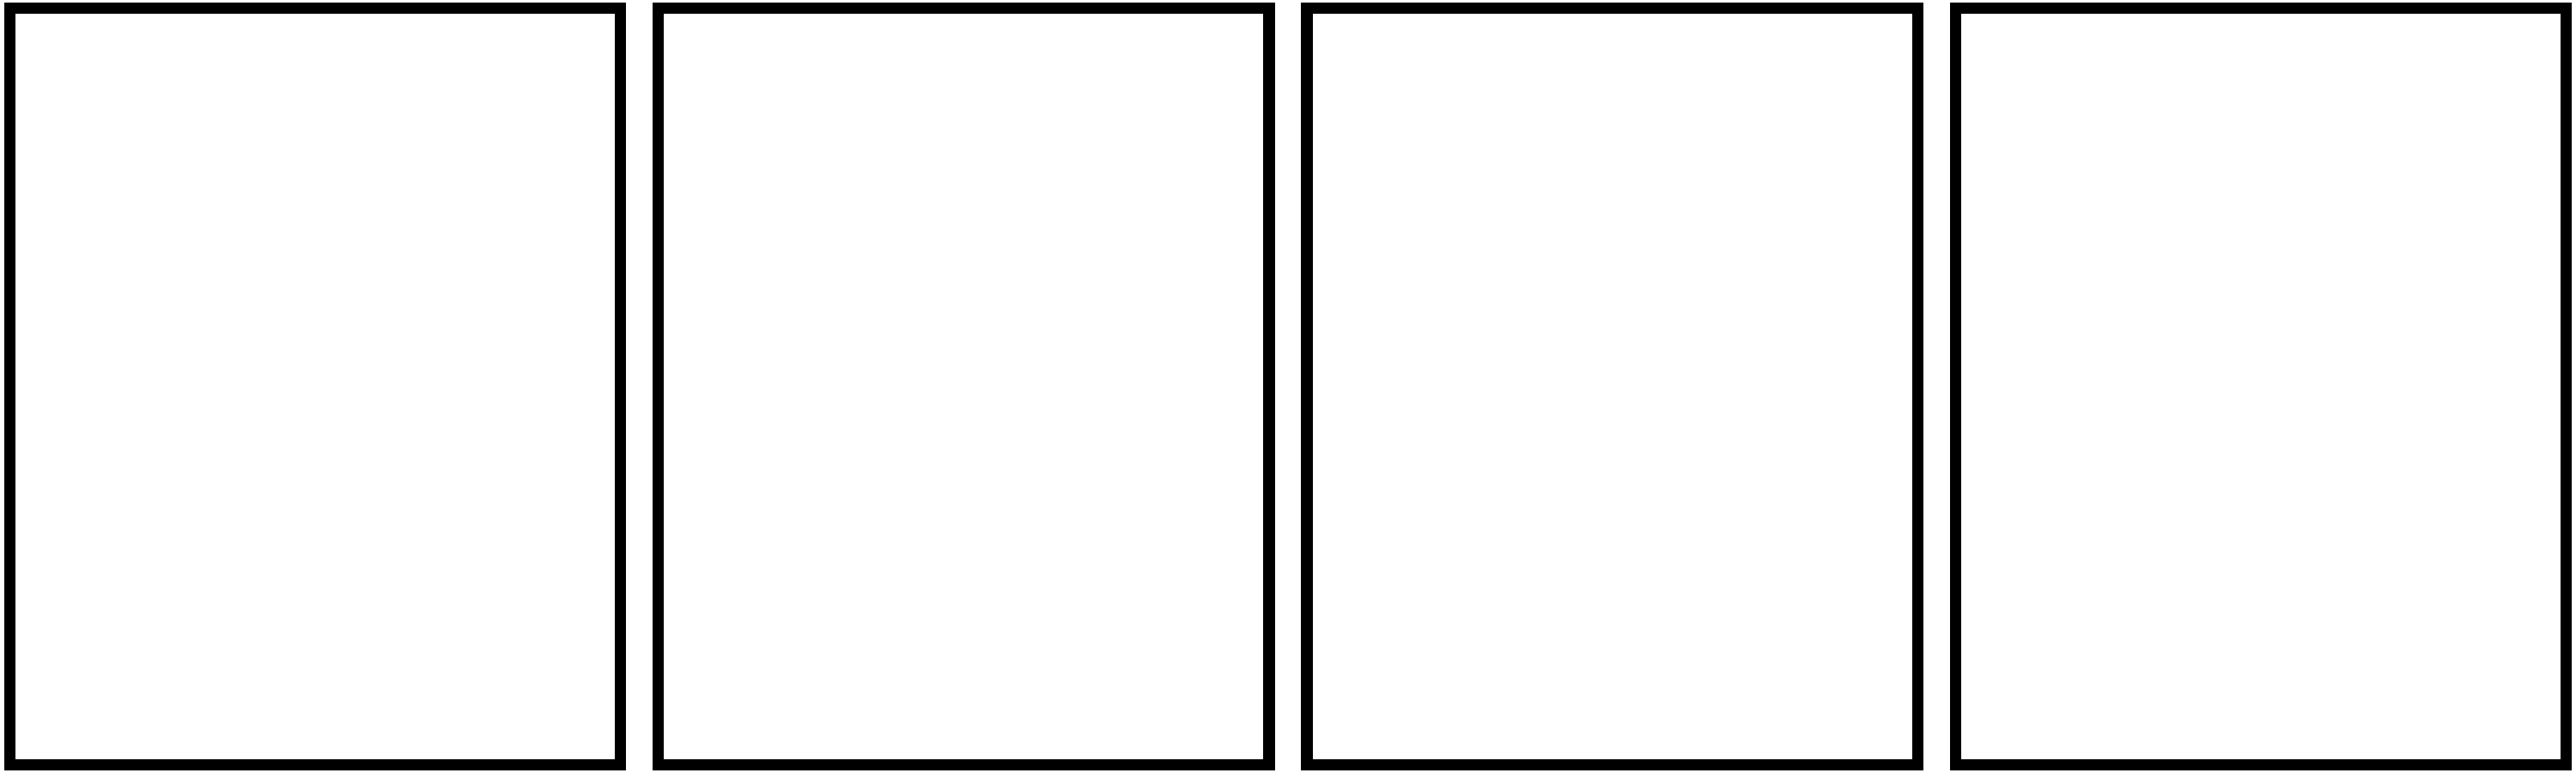 four panel comic strip template - comic strip template 4 boxes the image